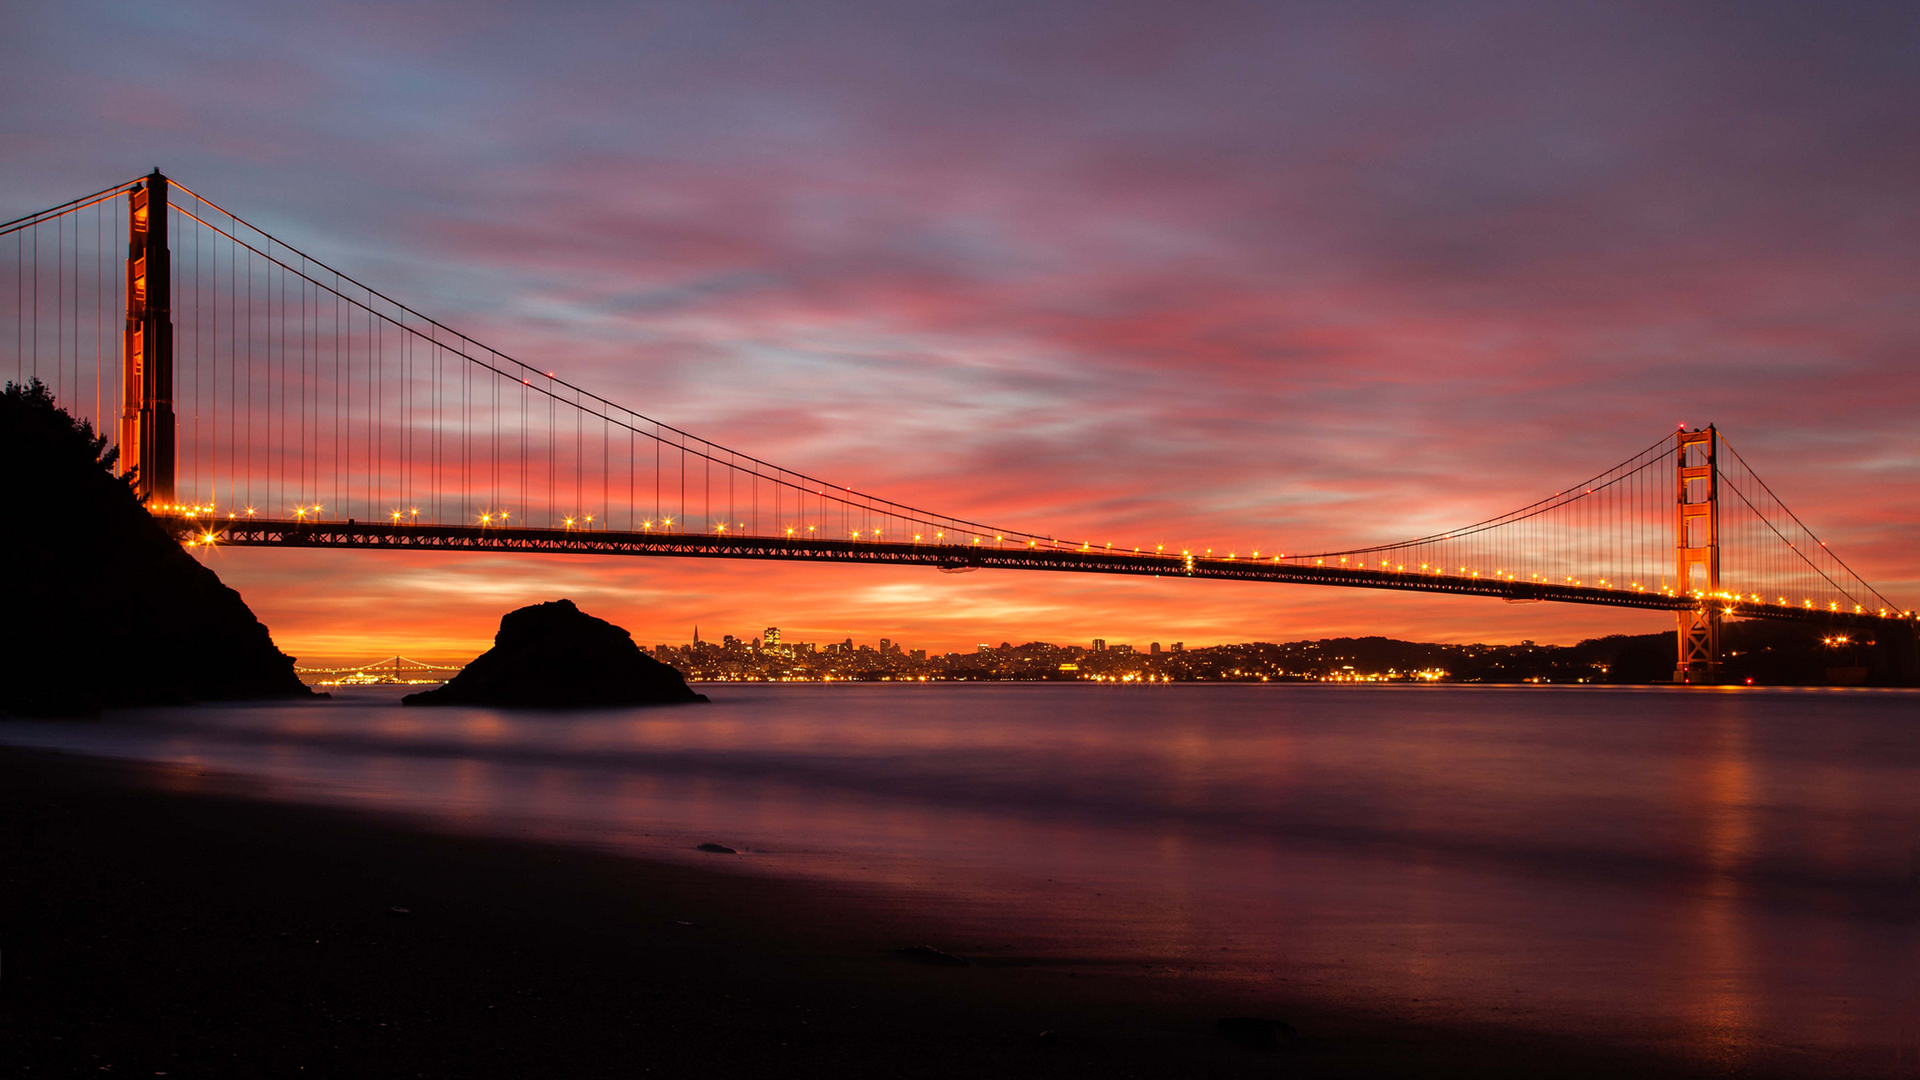 Golden Gate Bridge Bridge San Francisco Sunset Beach Shore